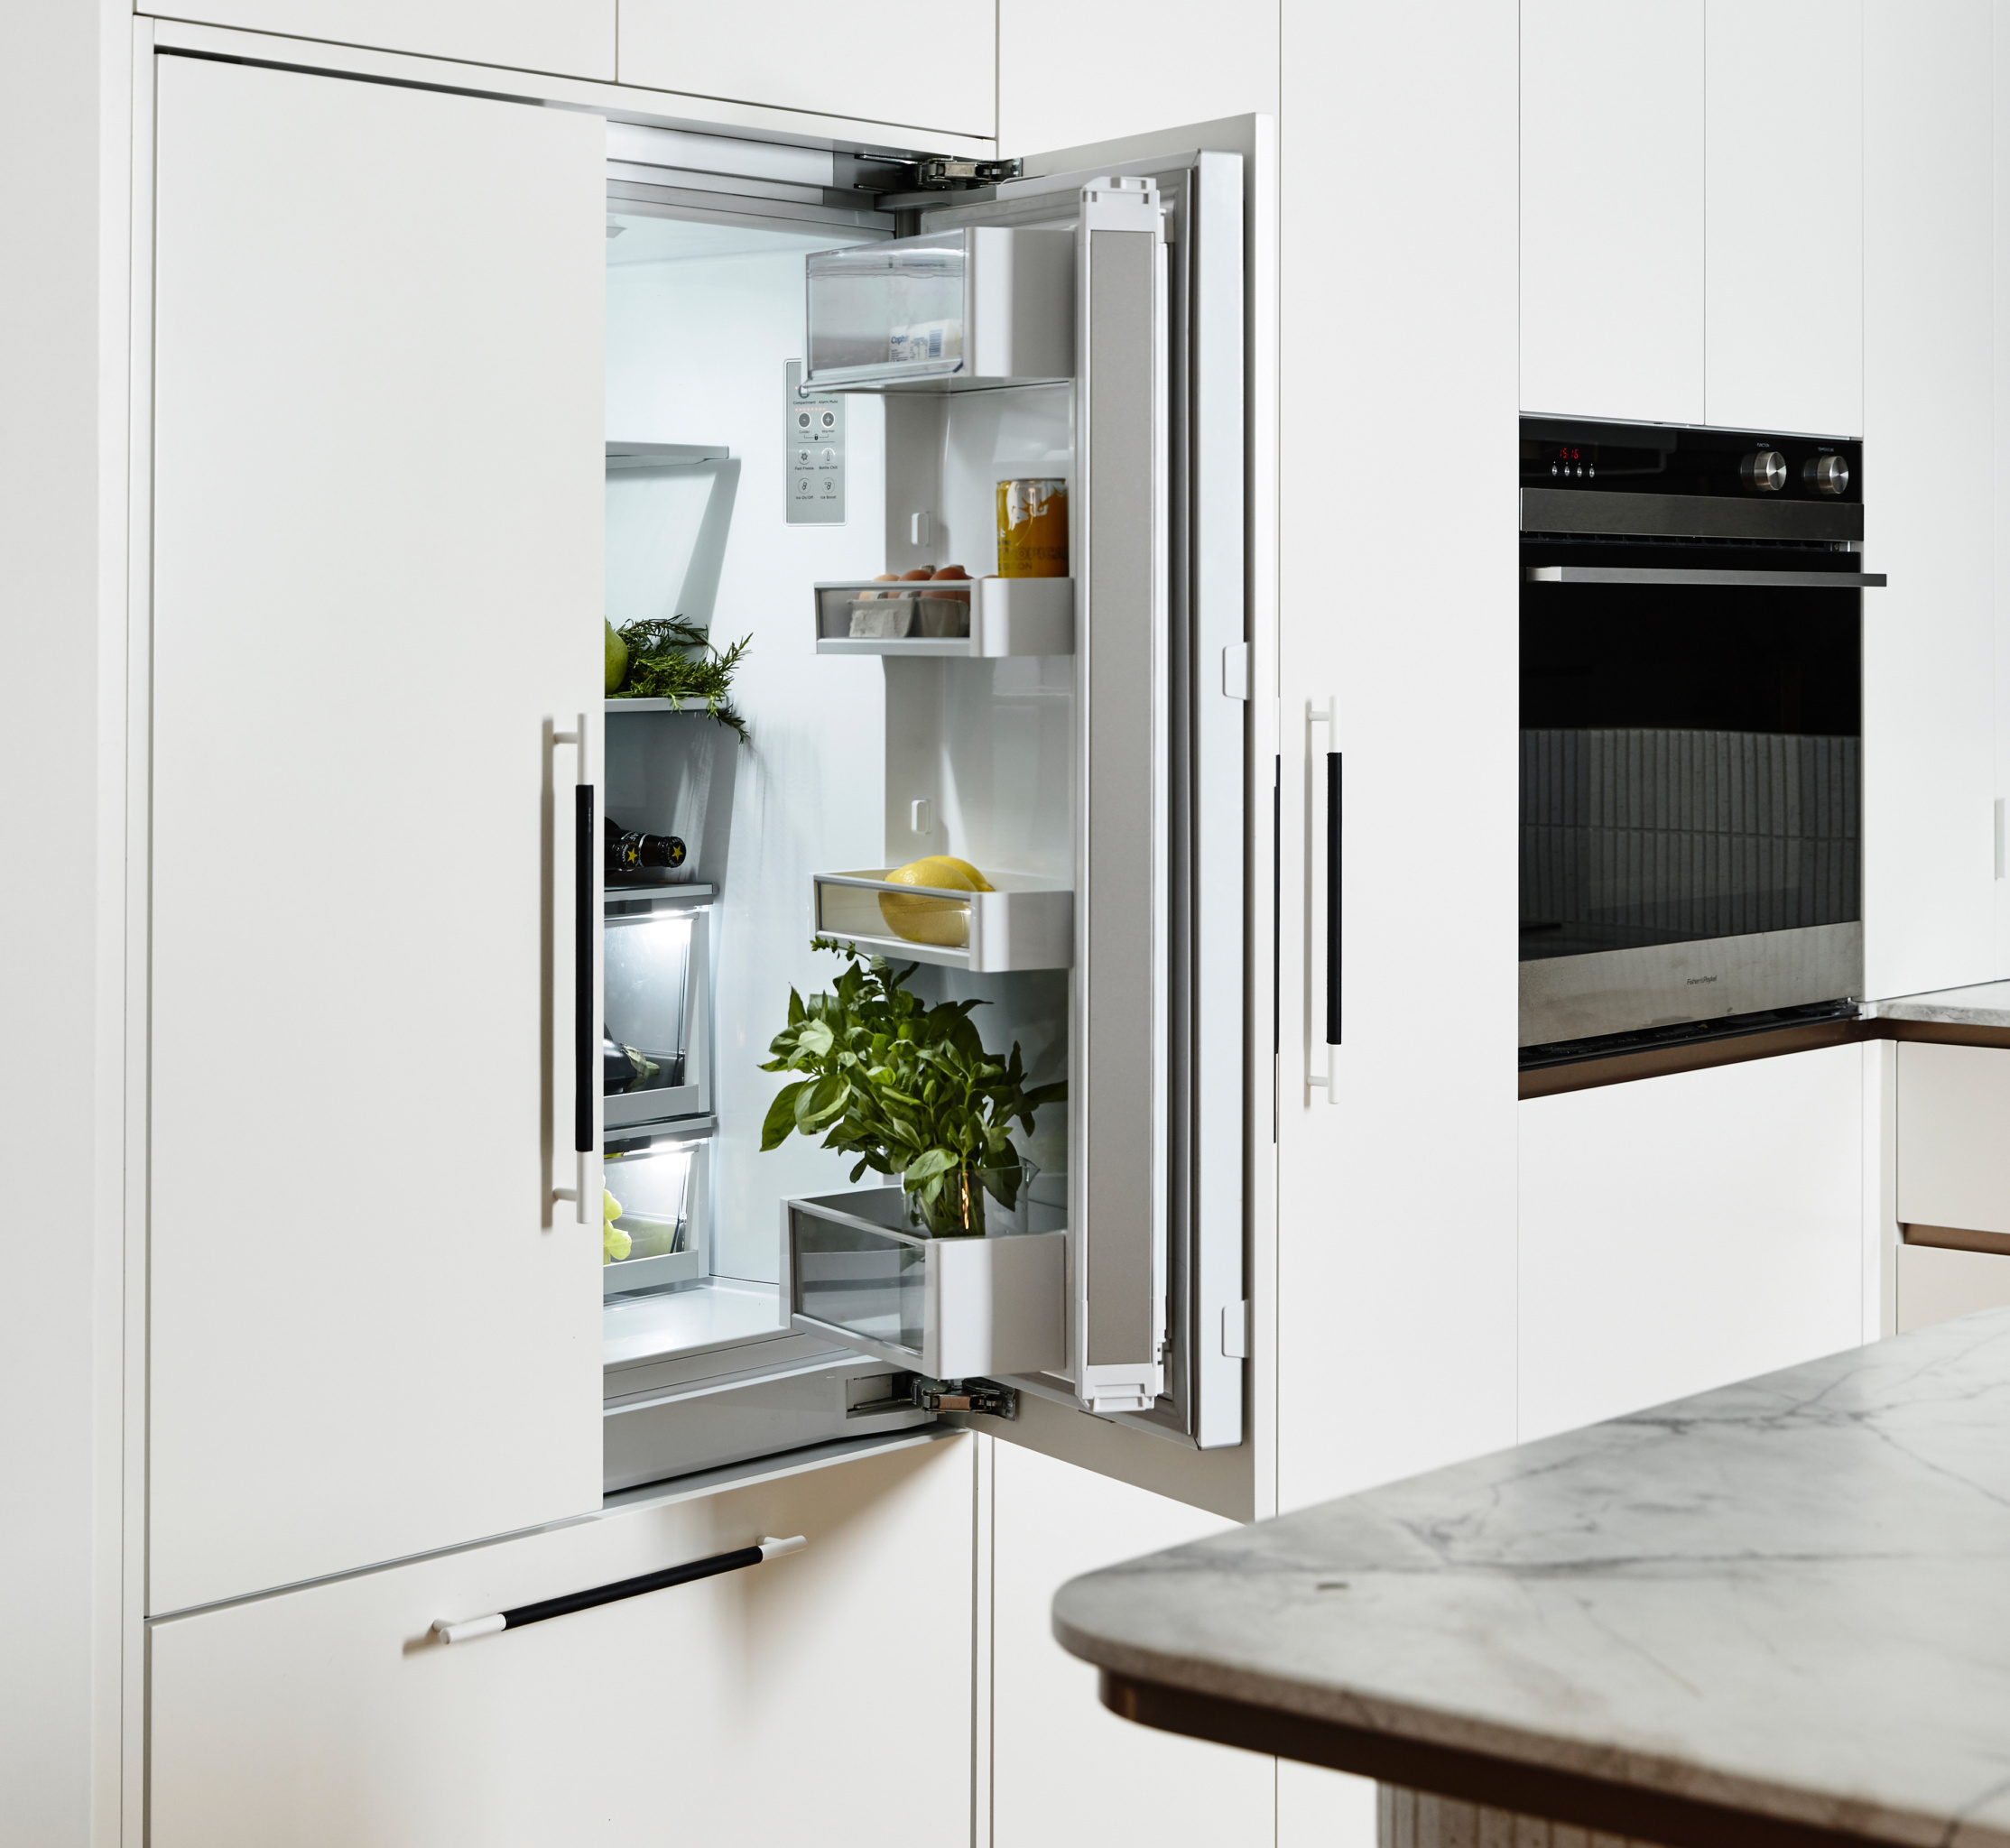 Photo of Fisher & Paykel responsive technology appliances